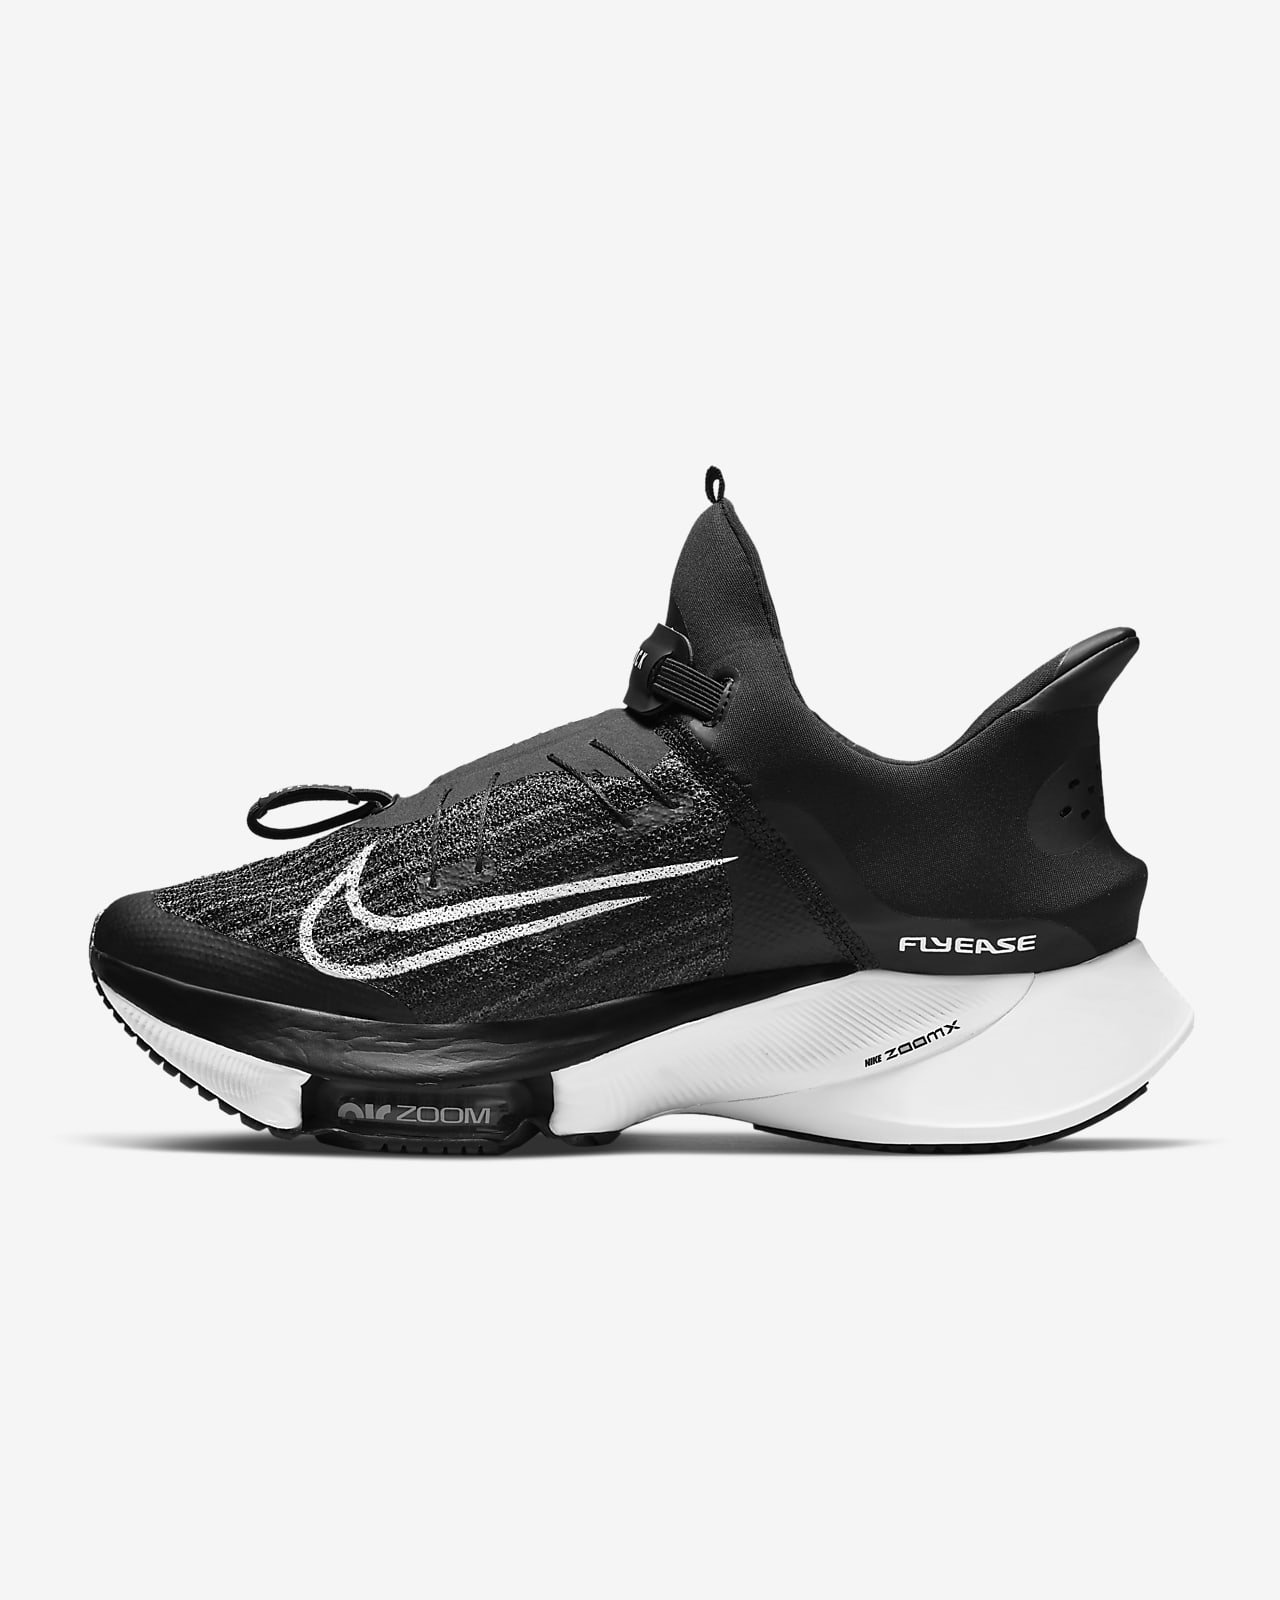 Nike Air Zoom Tempo NEXT% FlyEase Men's Running Shoes